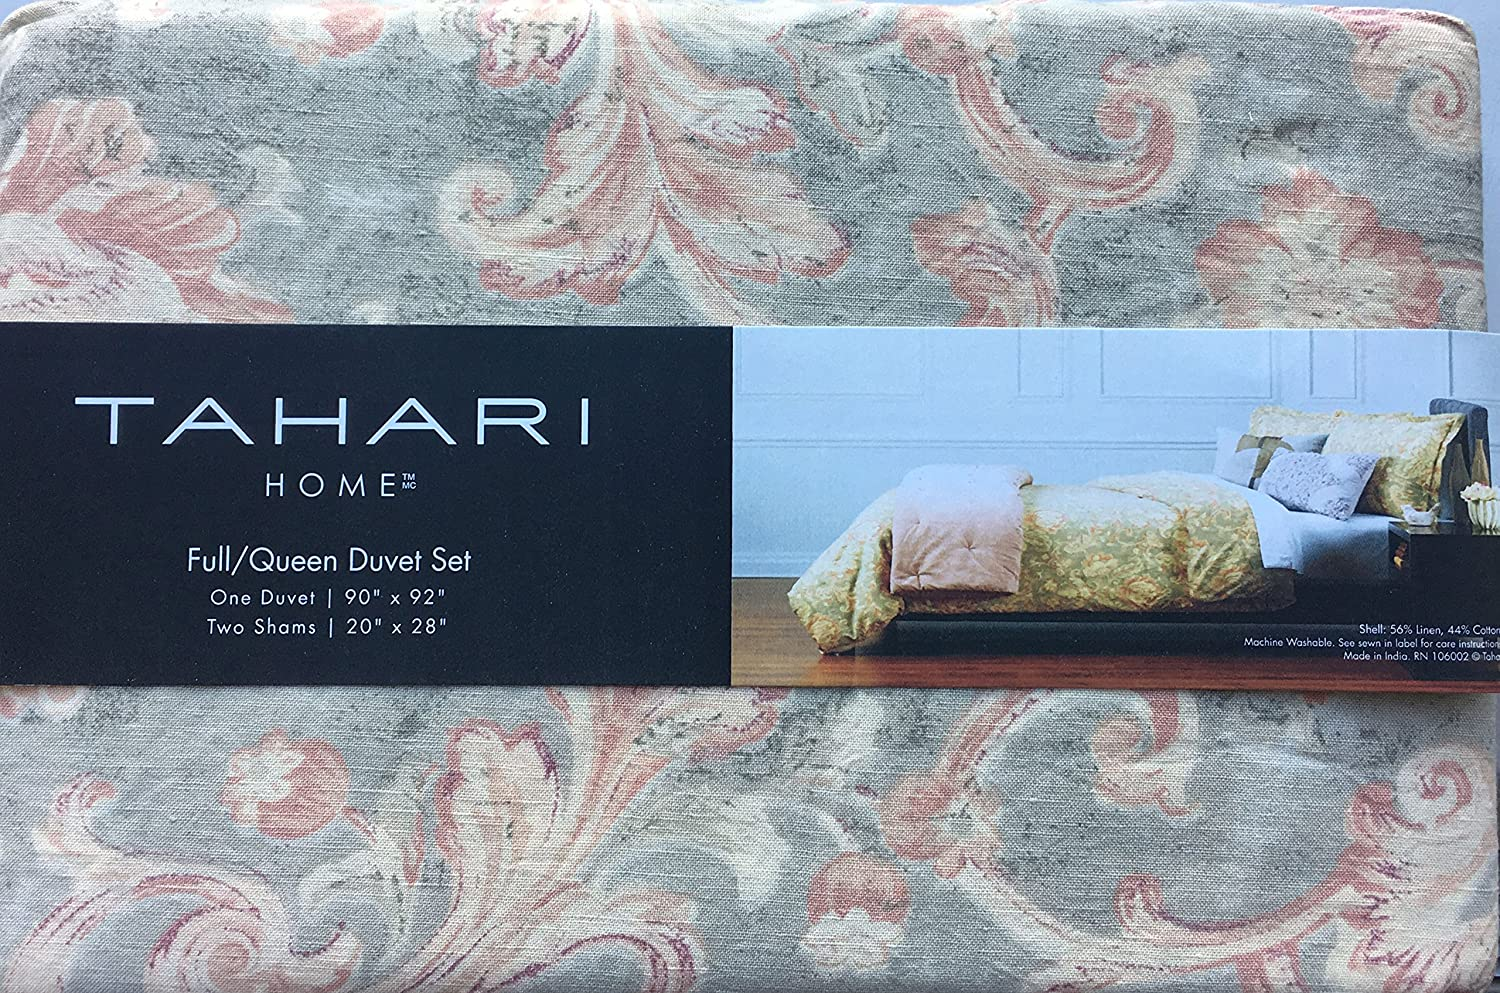 Tahari Bedding 3 Piece Full Queen Size Luxury Linen Cotton Blend Duvet Cover Set Damask Floral Pattern in Shades of Yellow and Pink on a Light Greenish Gray Background